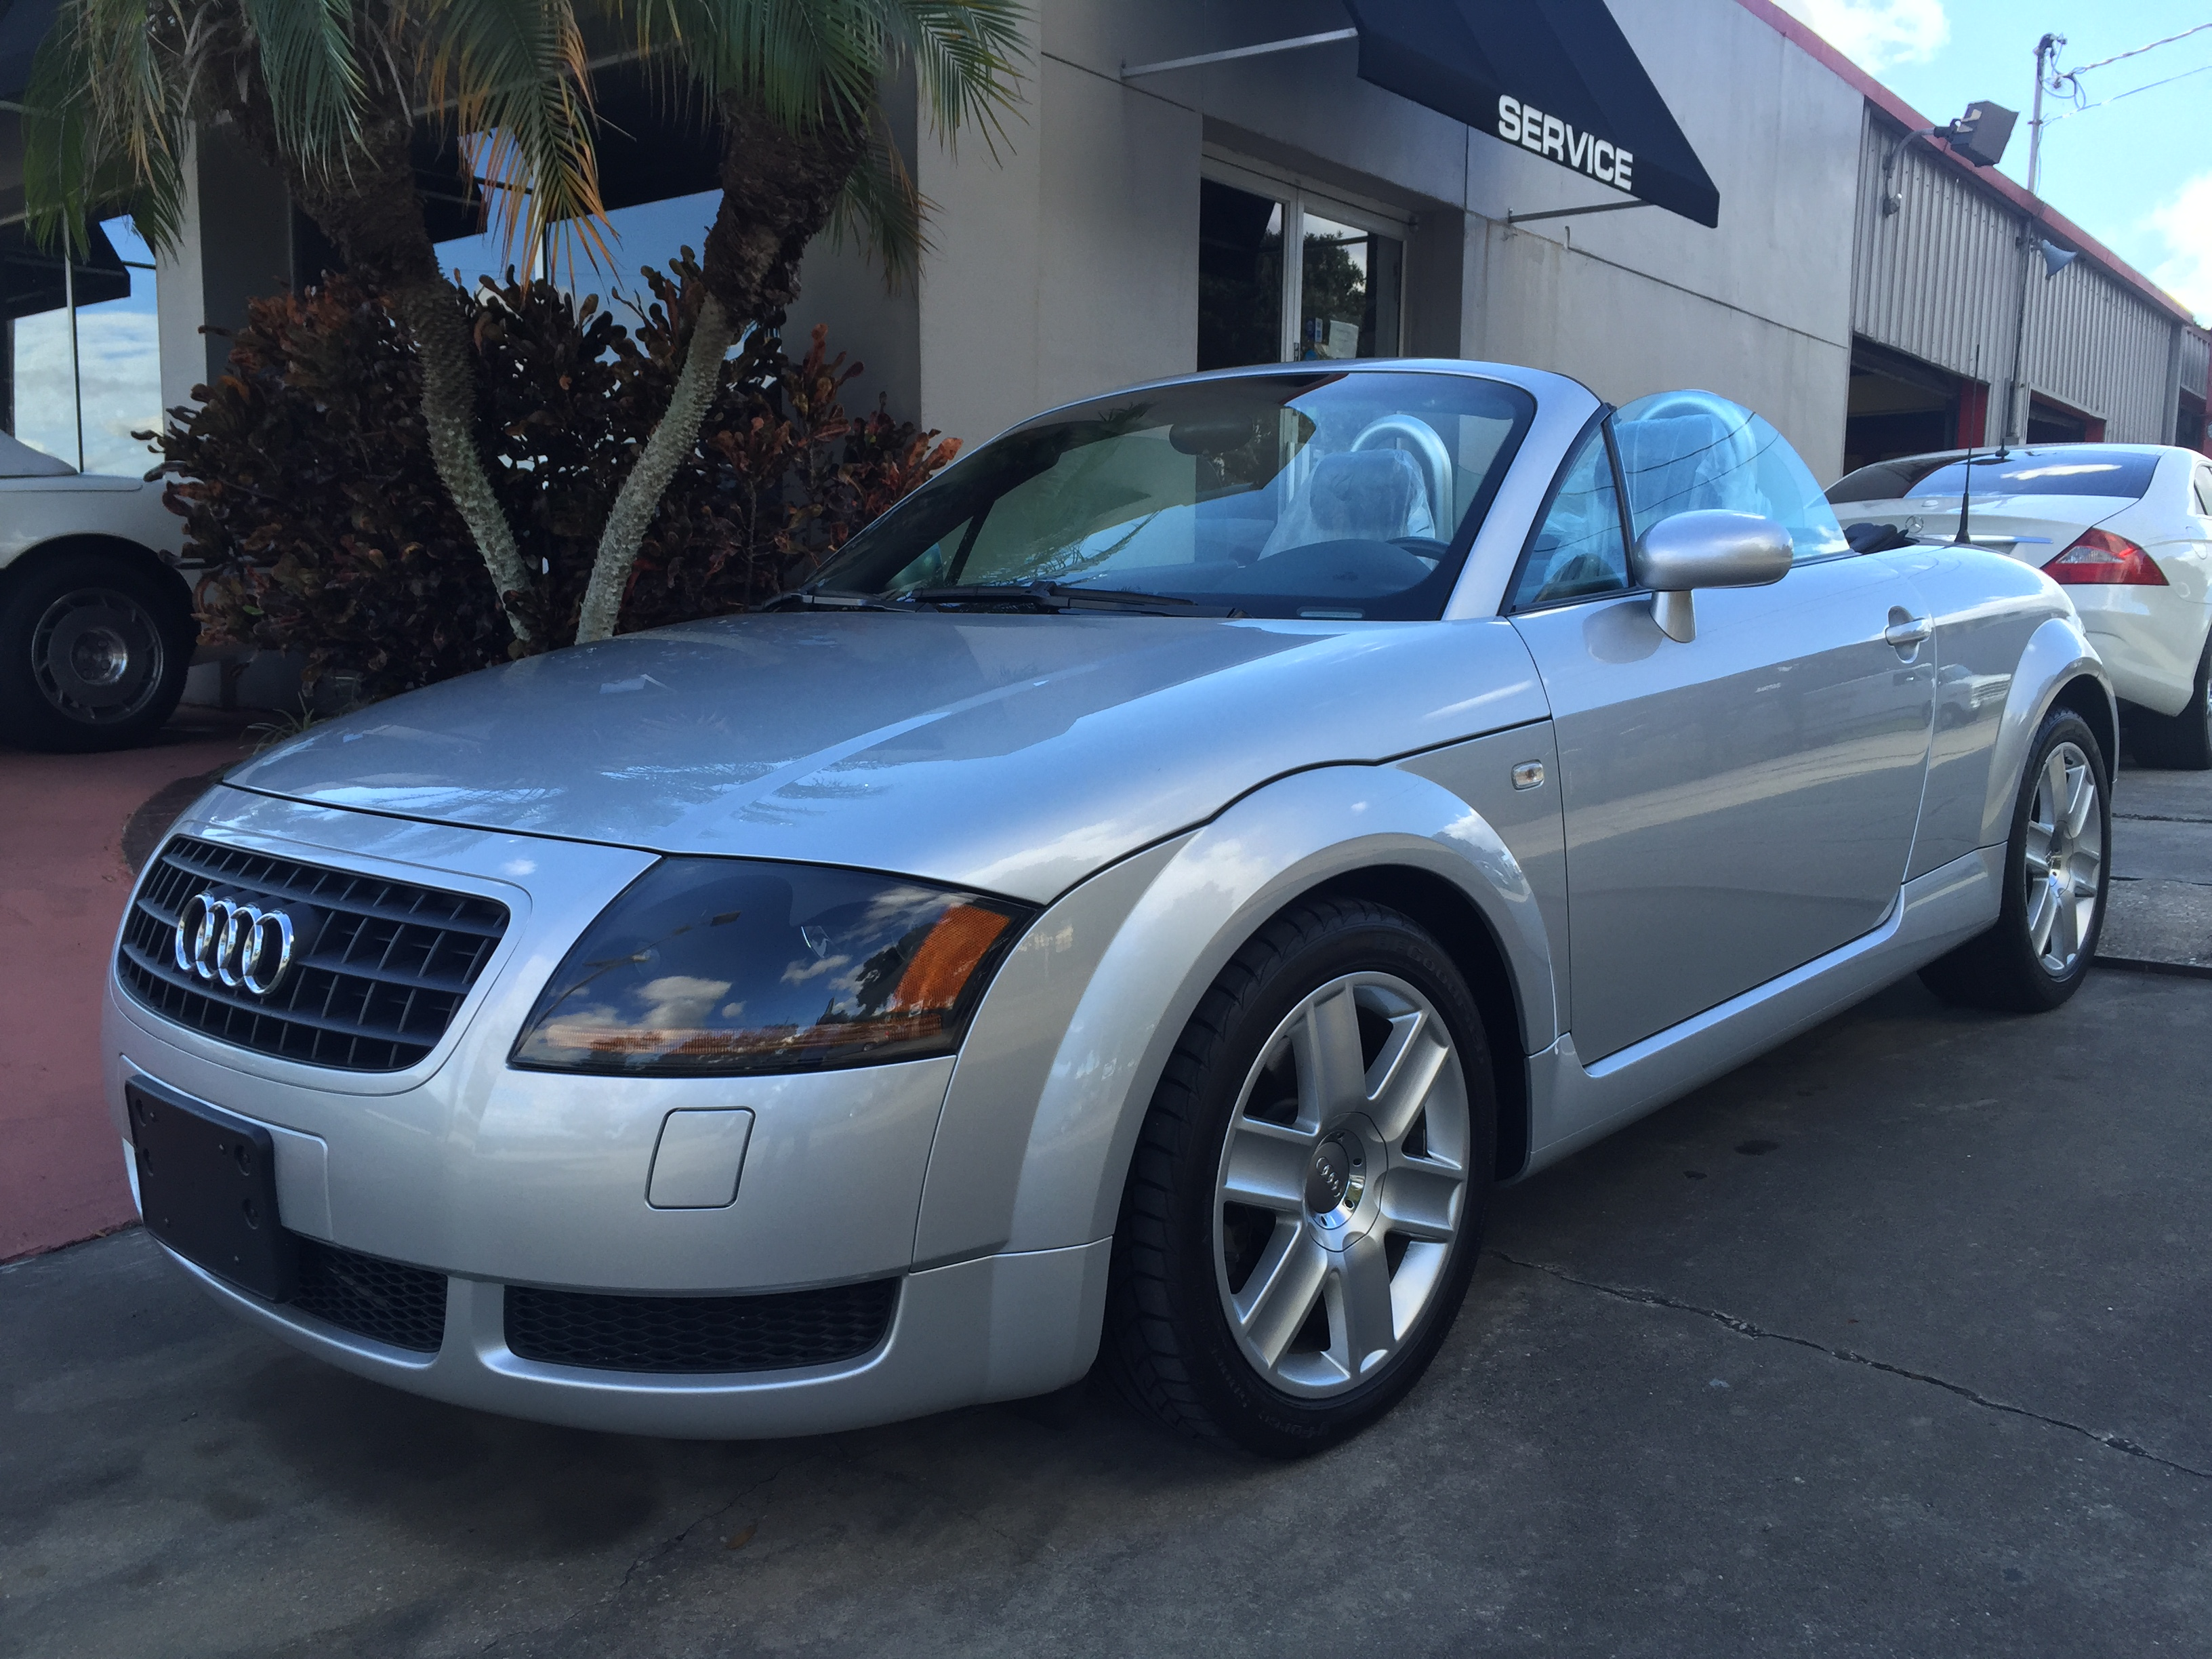 2001 Audi TT 1.8T Roadster | The Car Bar